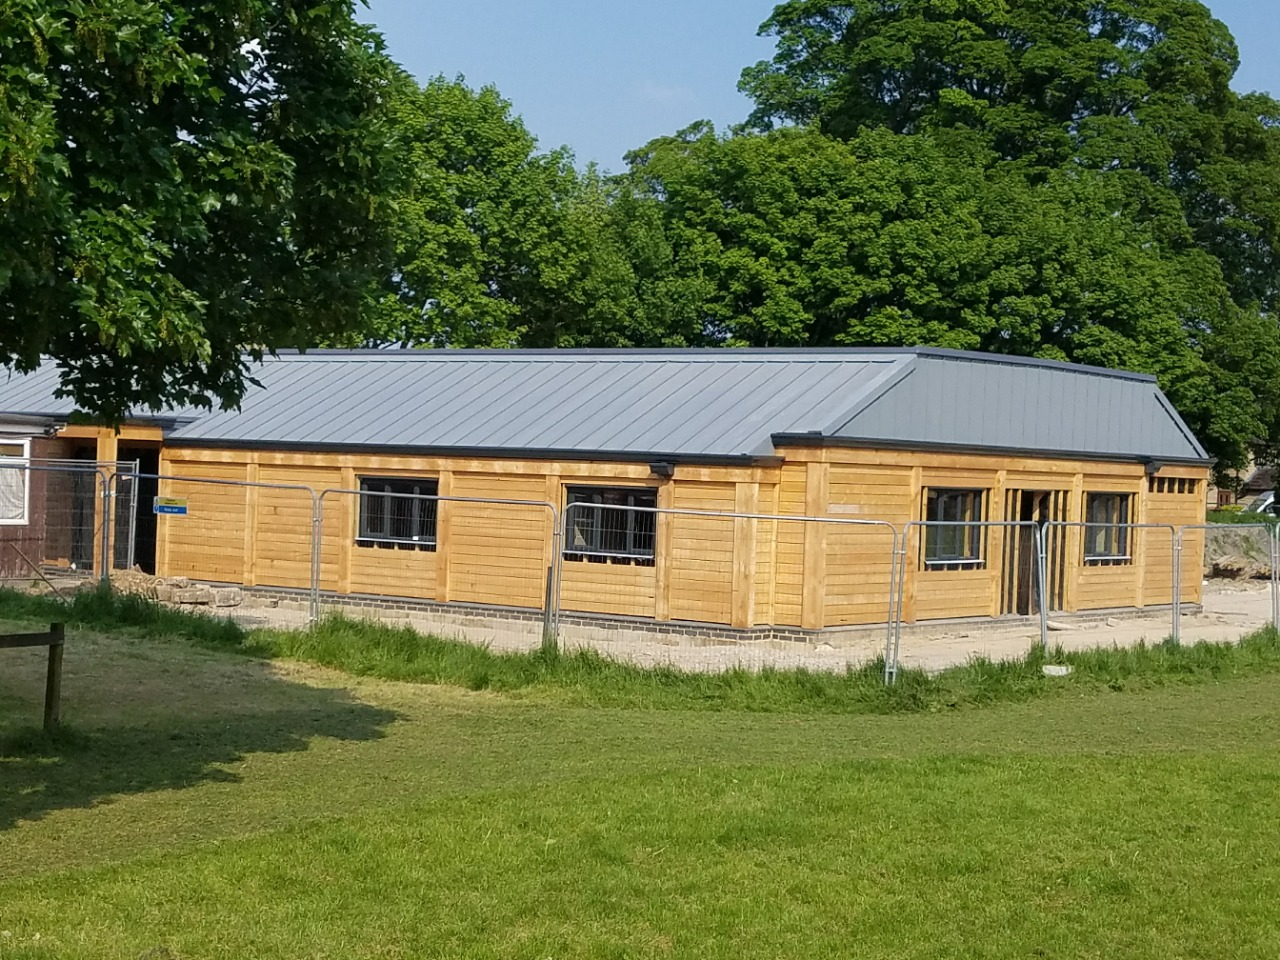 The new Burley Scout and Guide headquarters